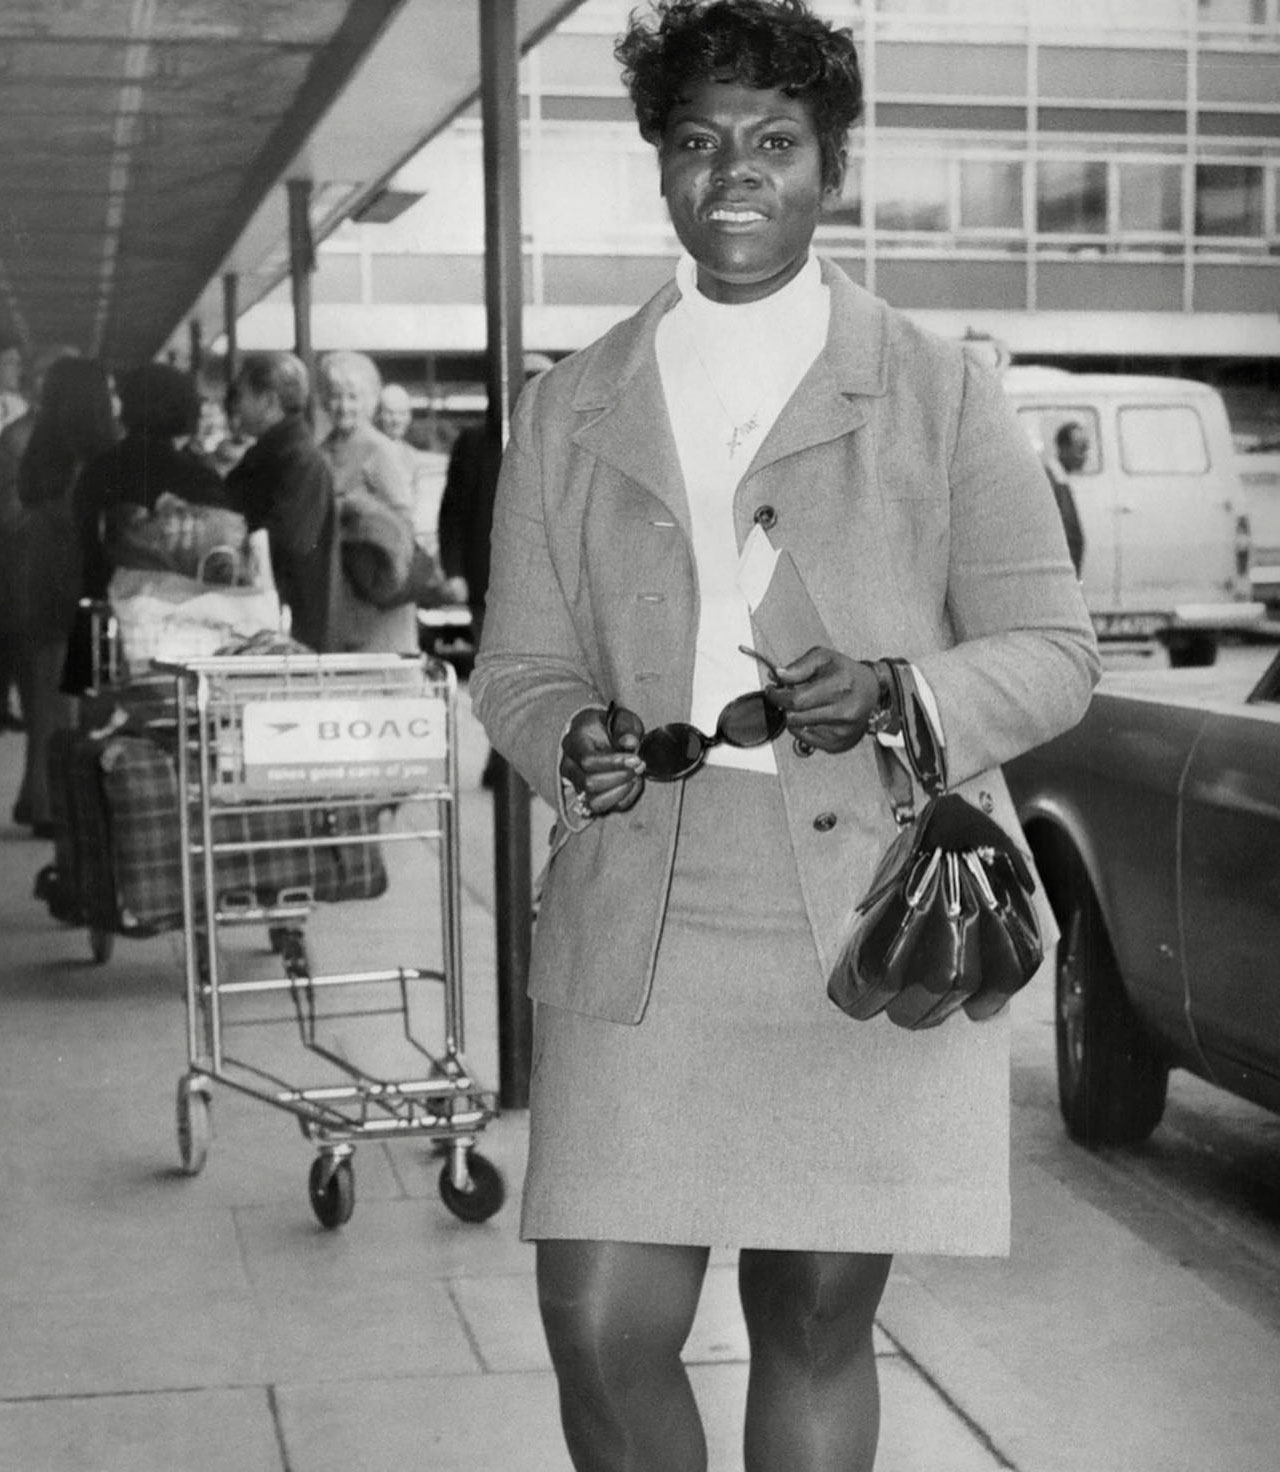 Dee Dee arriving in London for a two week tour of England (October 17, 1968)